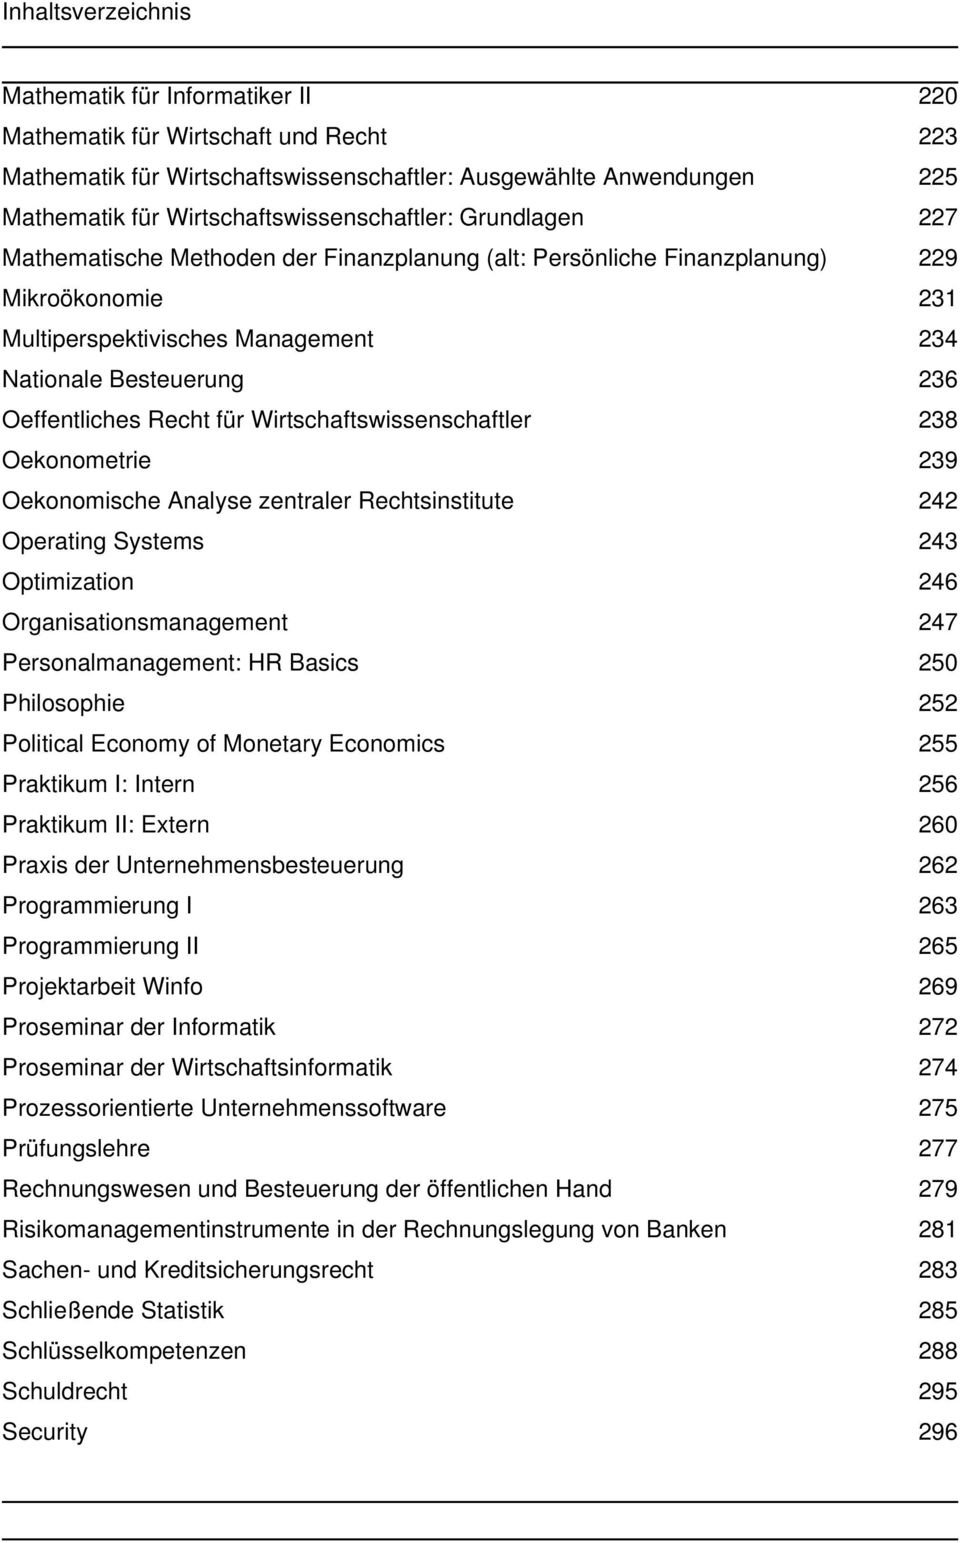 236 Oeffentliches Recht für Wirtschaftswissenschaftler 238 Oekonometrie 239 Oekonomische Analyse zentraler Rechtsinstitute 242 Operating Systems 243 Optimization 246 Organisationsmanagement 247